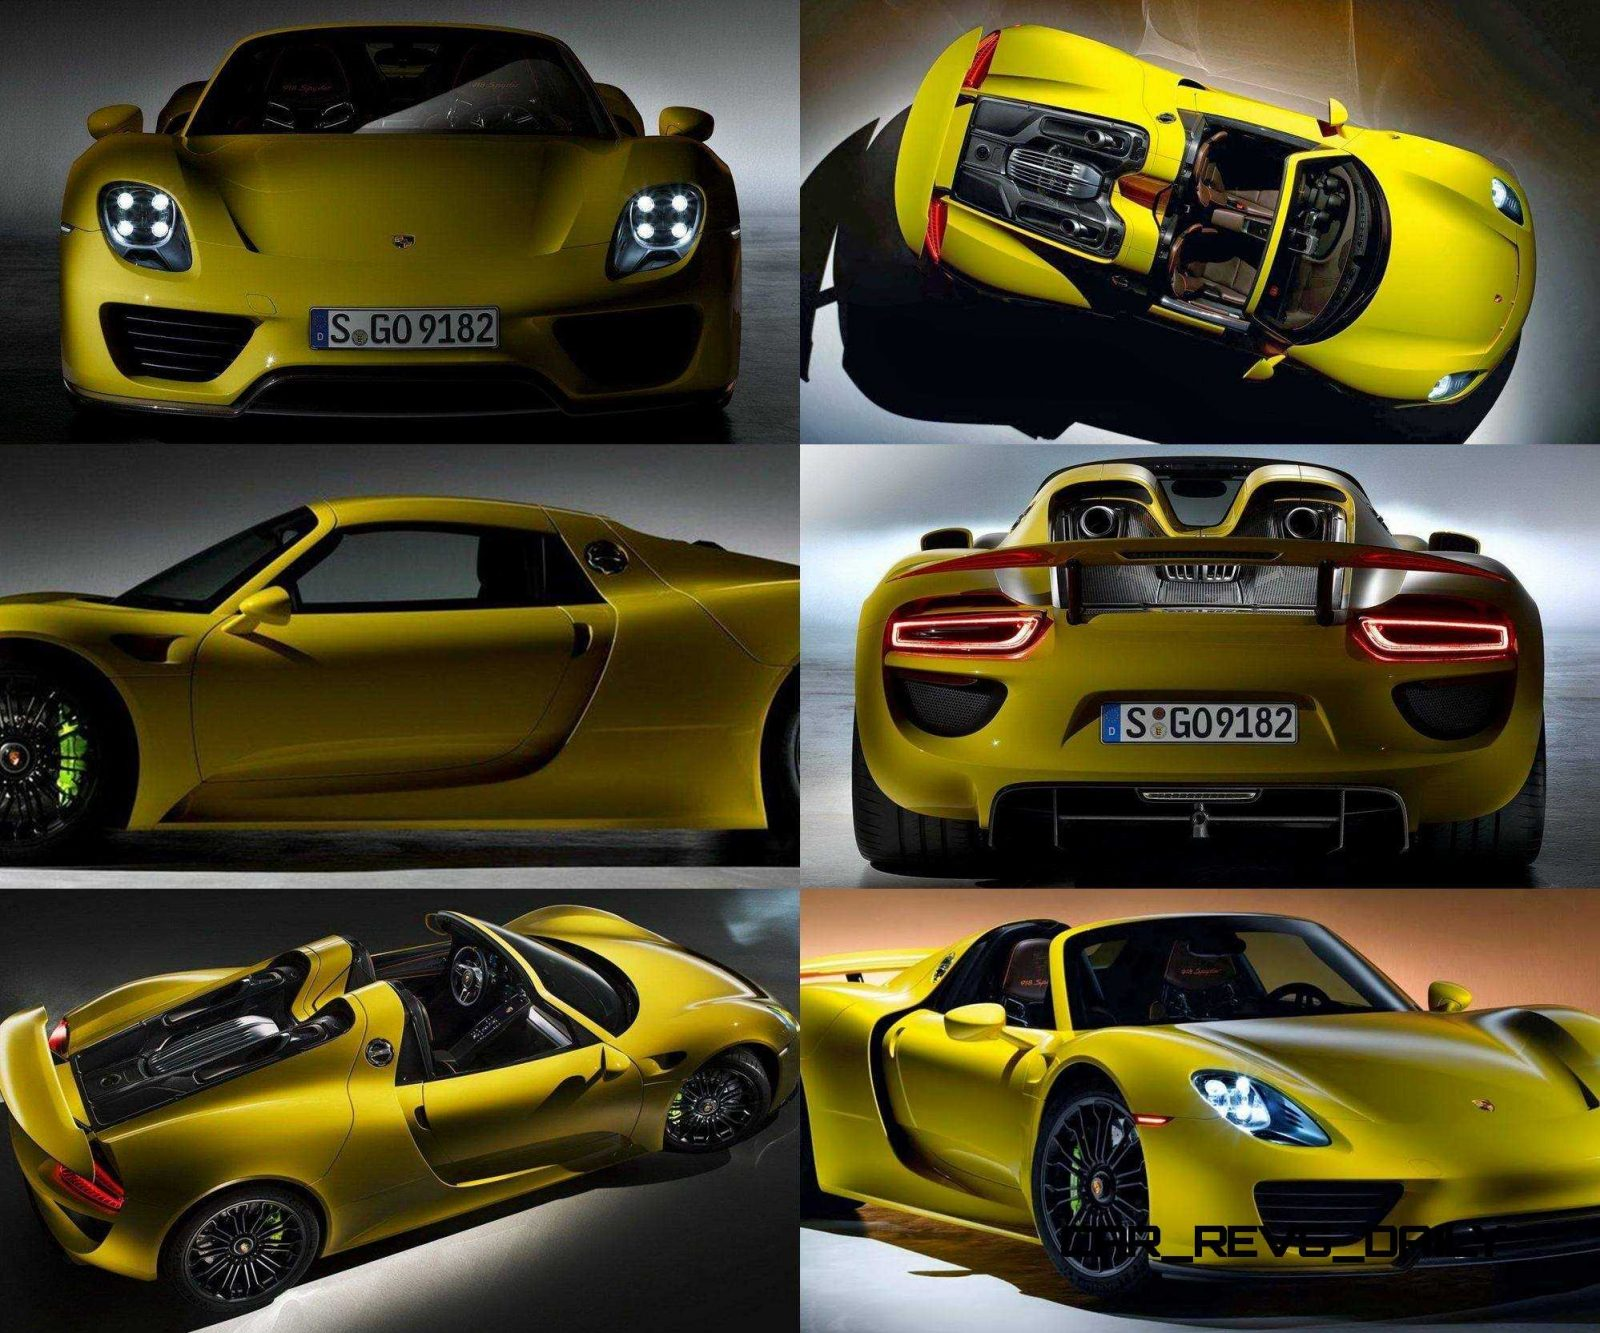 hd video 918 spyder in hot track session latest yellow. Black Bedroom Furniture Sets. Home Design Ideas